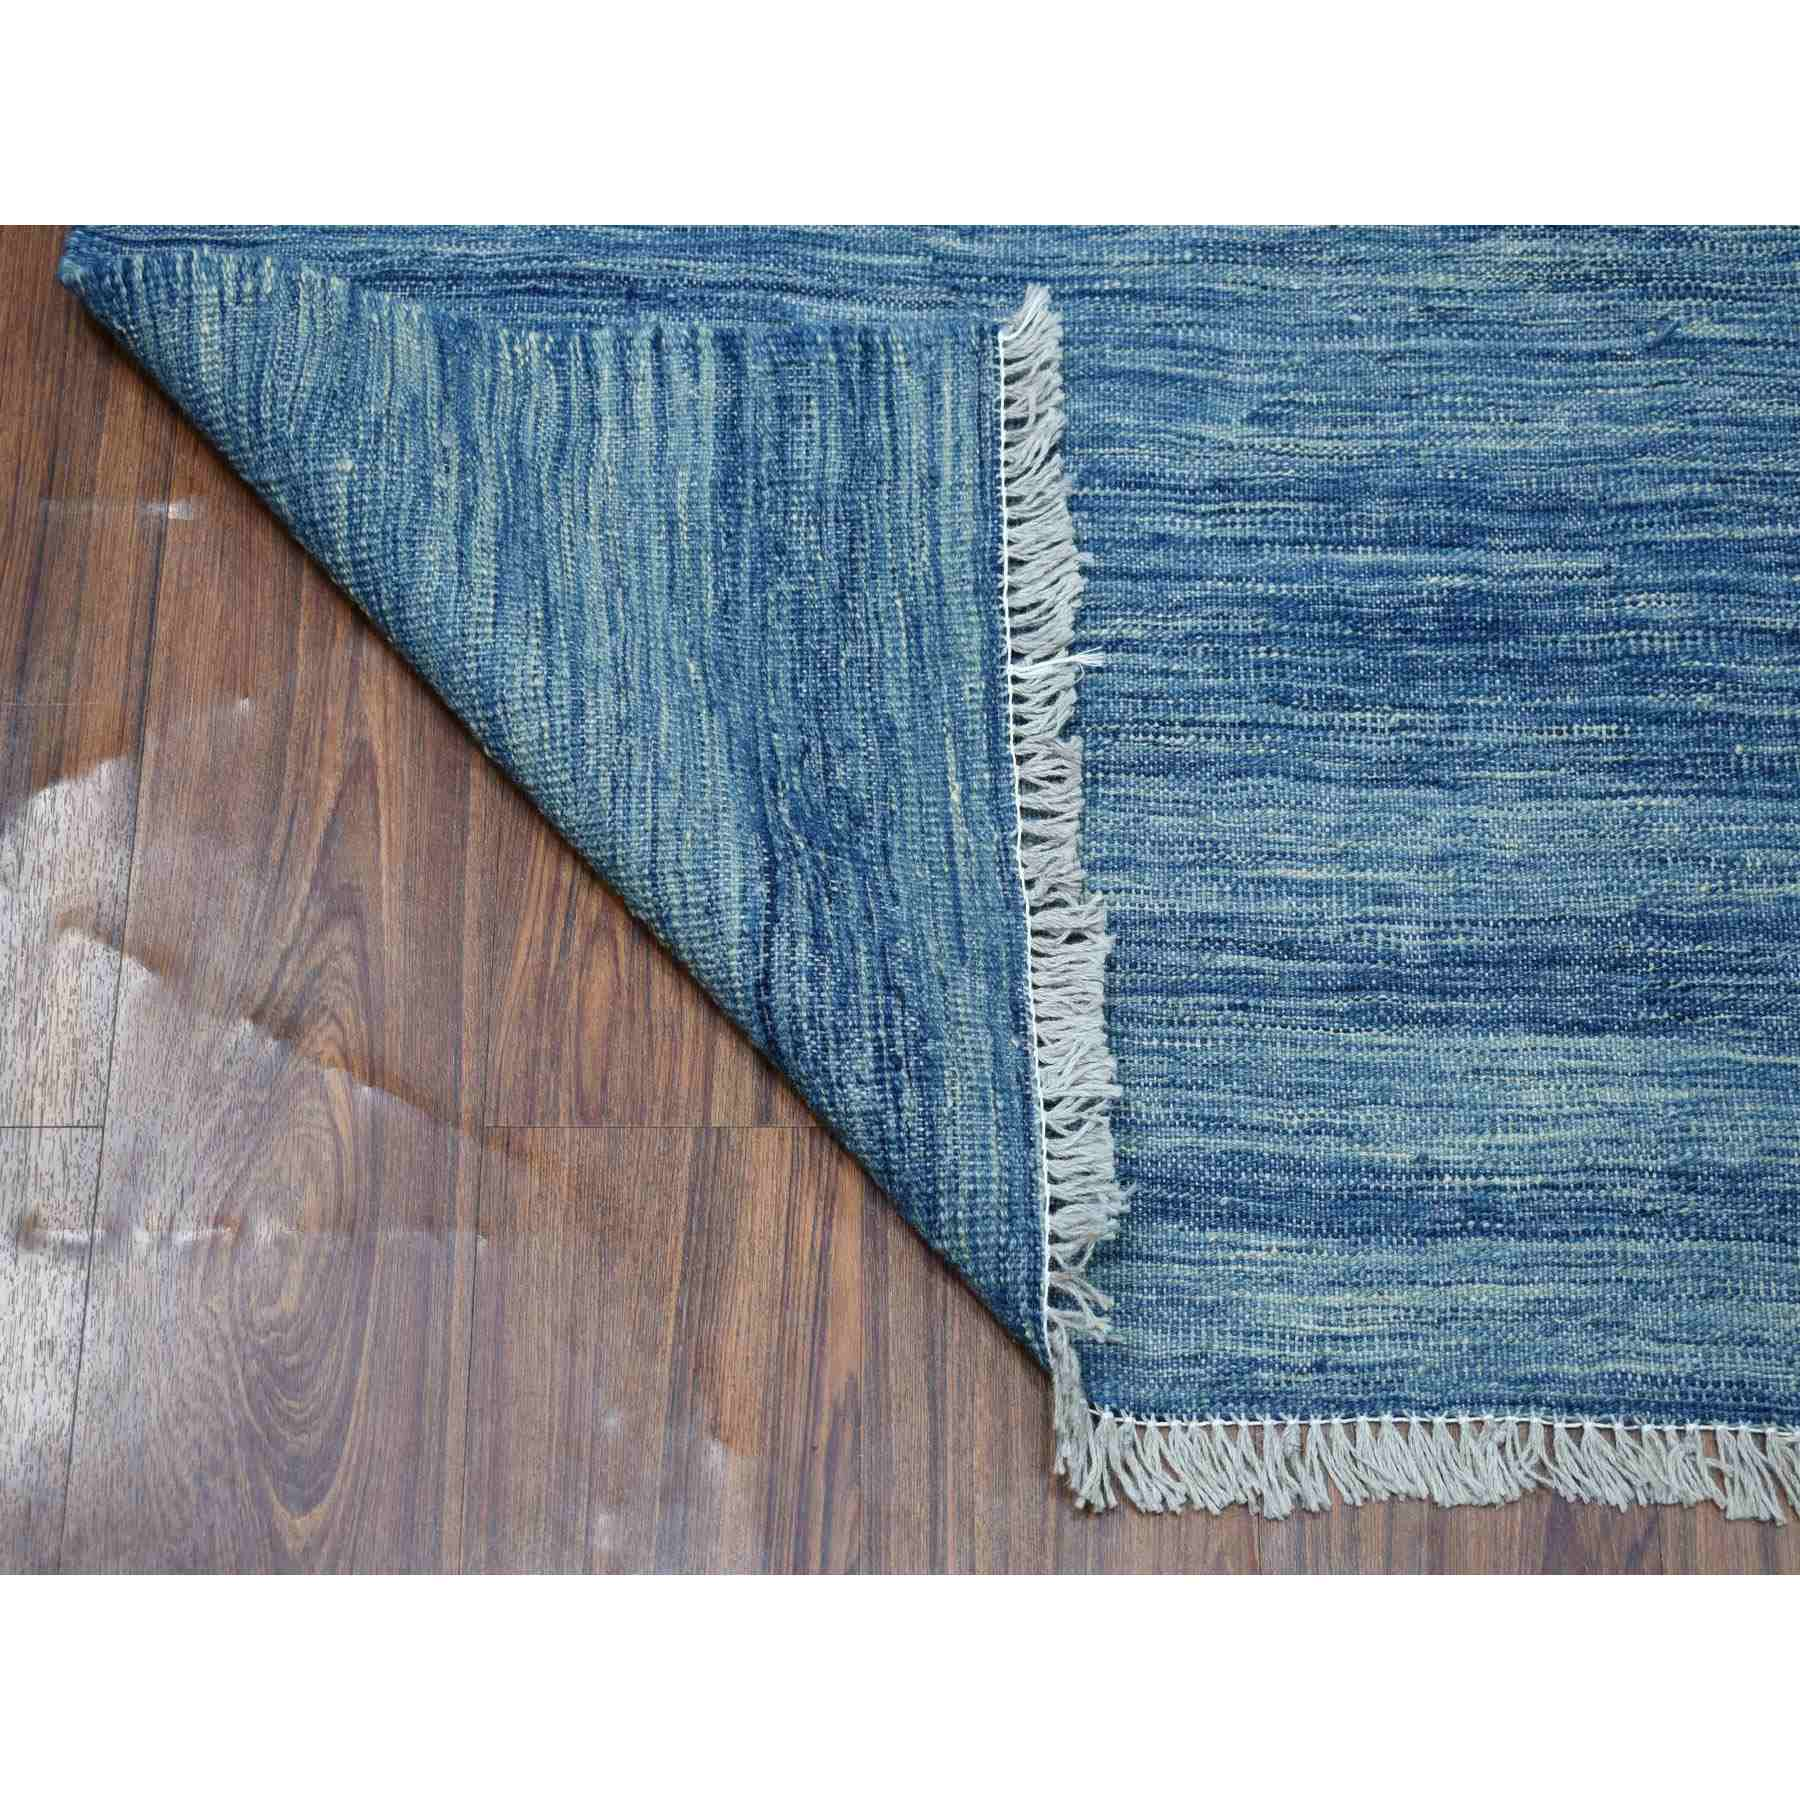 Flat-Weave-Hand-Woven-Rug-269190